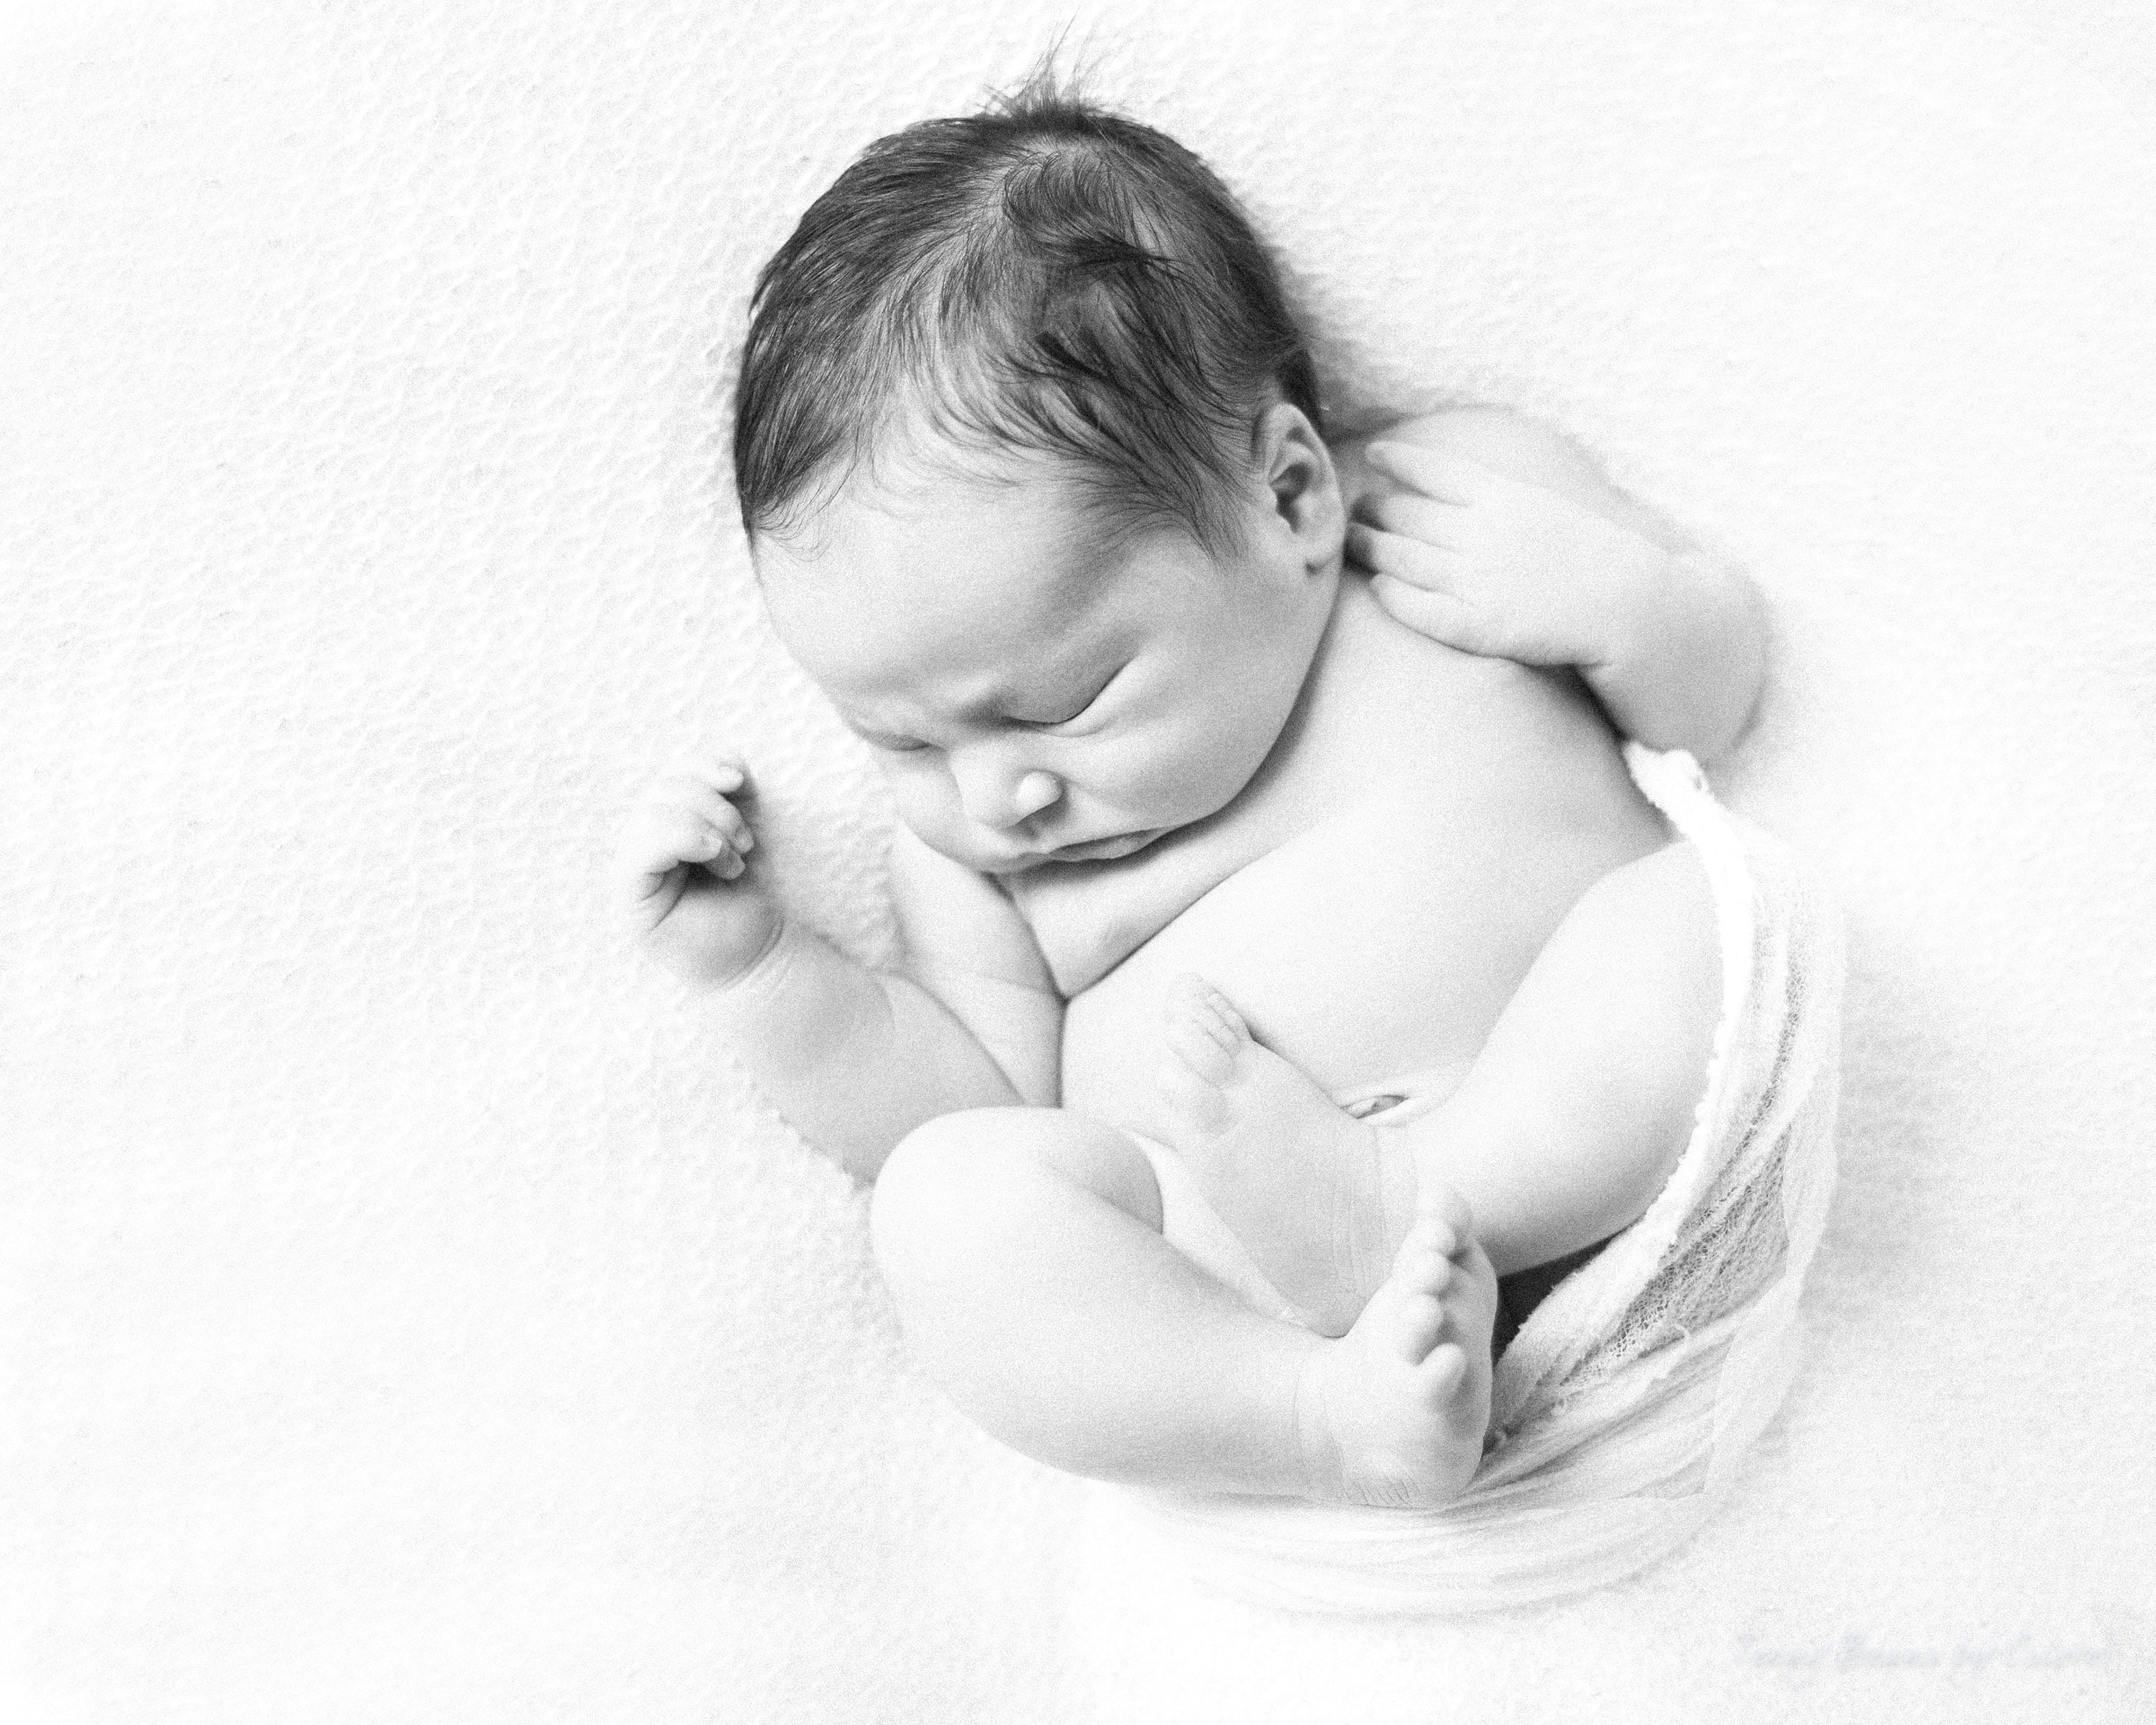 raleigh-newborn-photographer-baby-benjamin-7 raleigh newborn photographer - baby benjamin